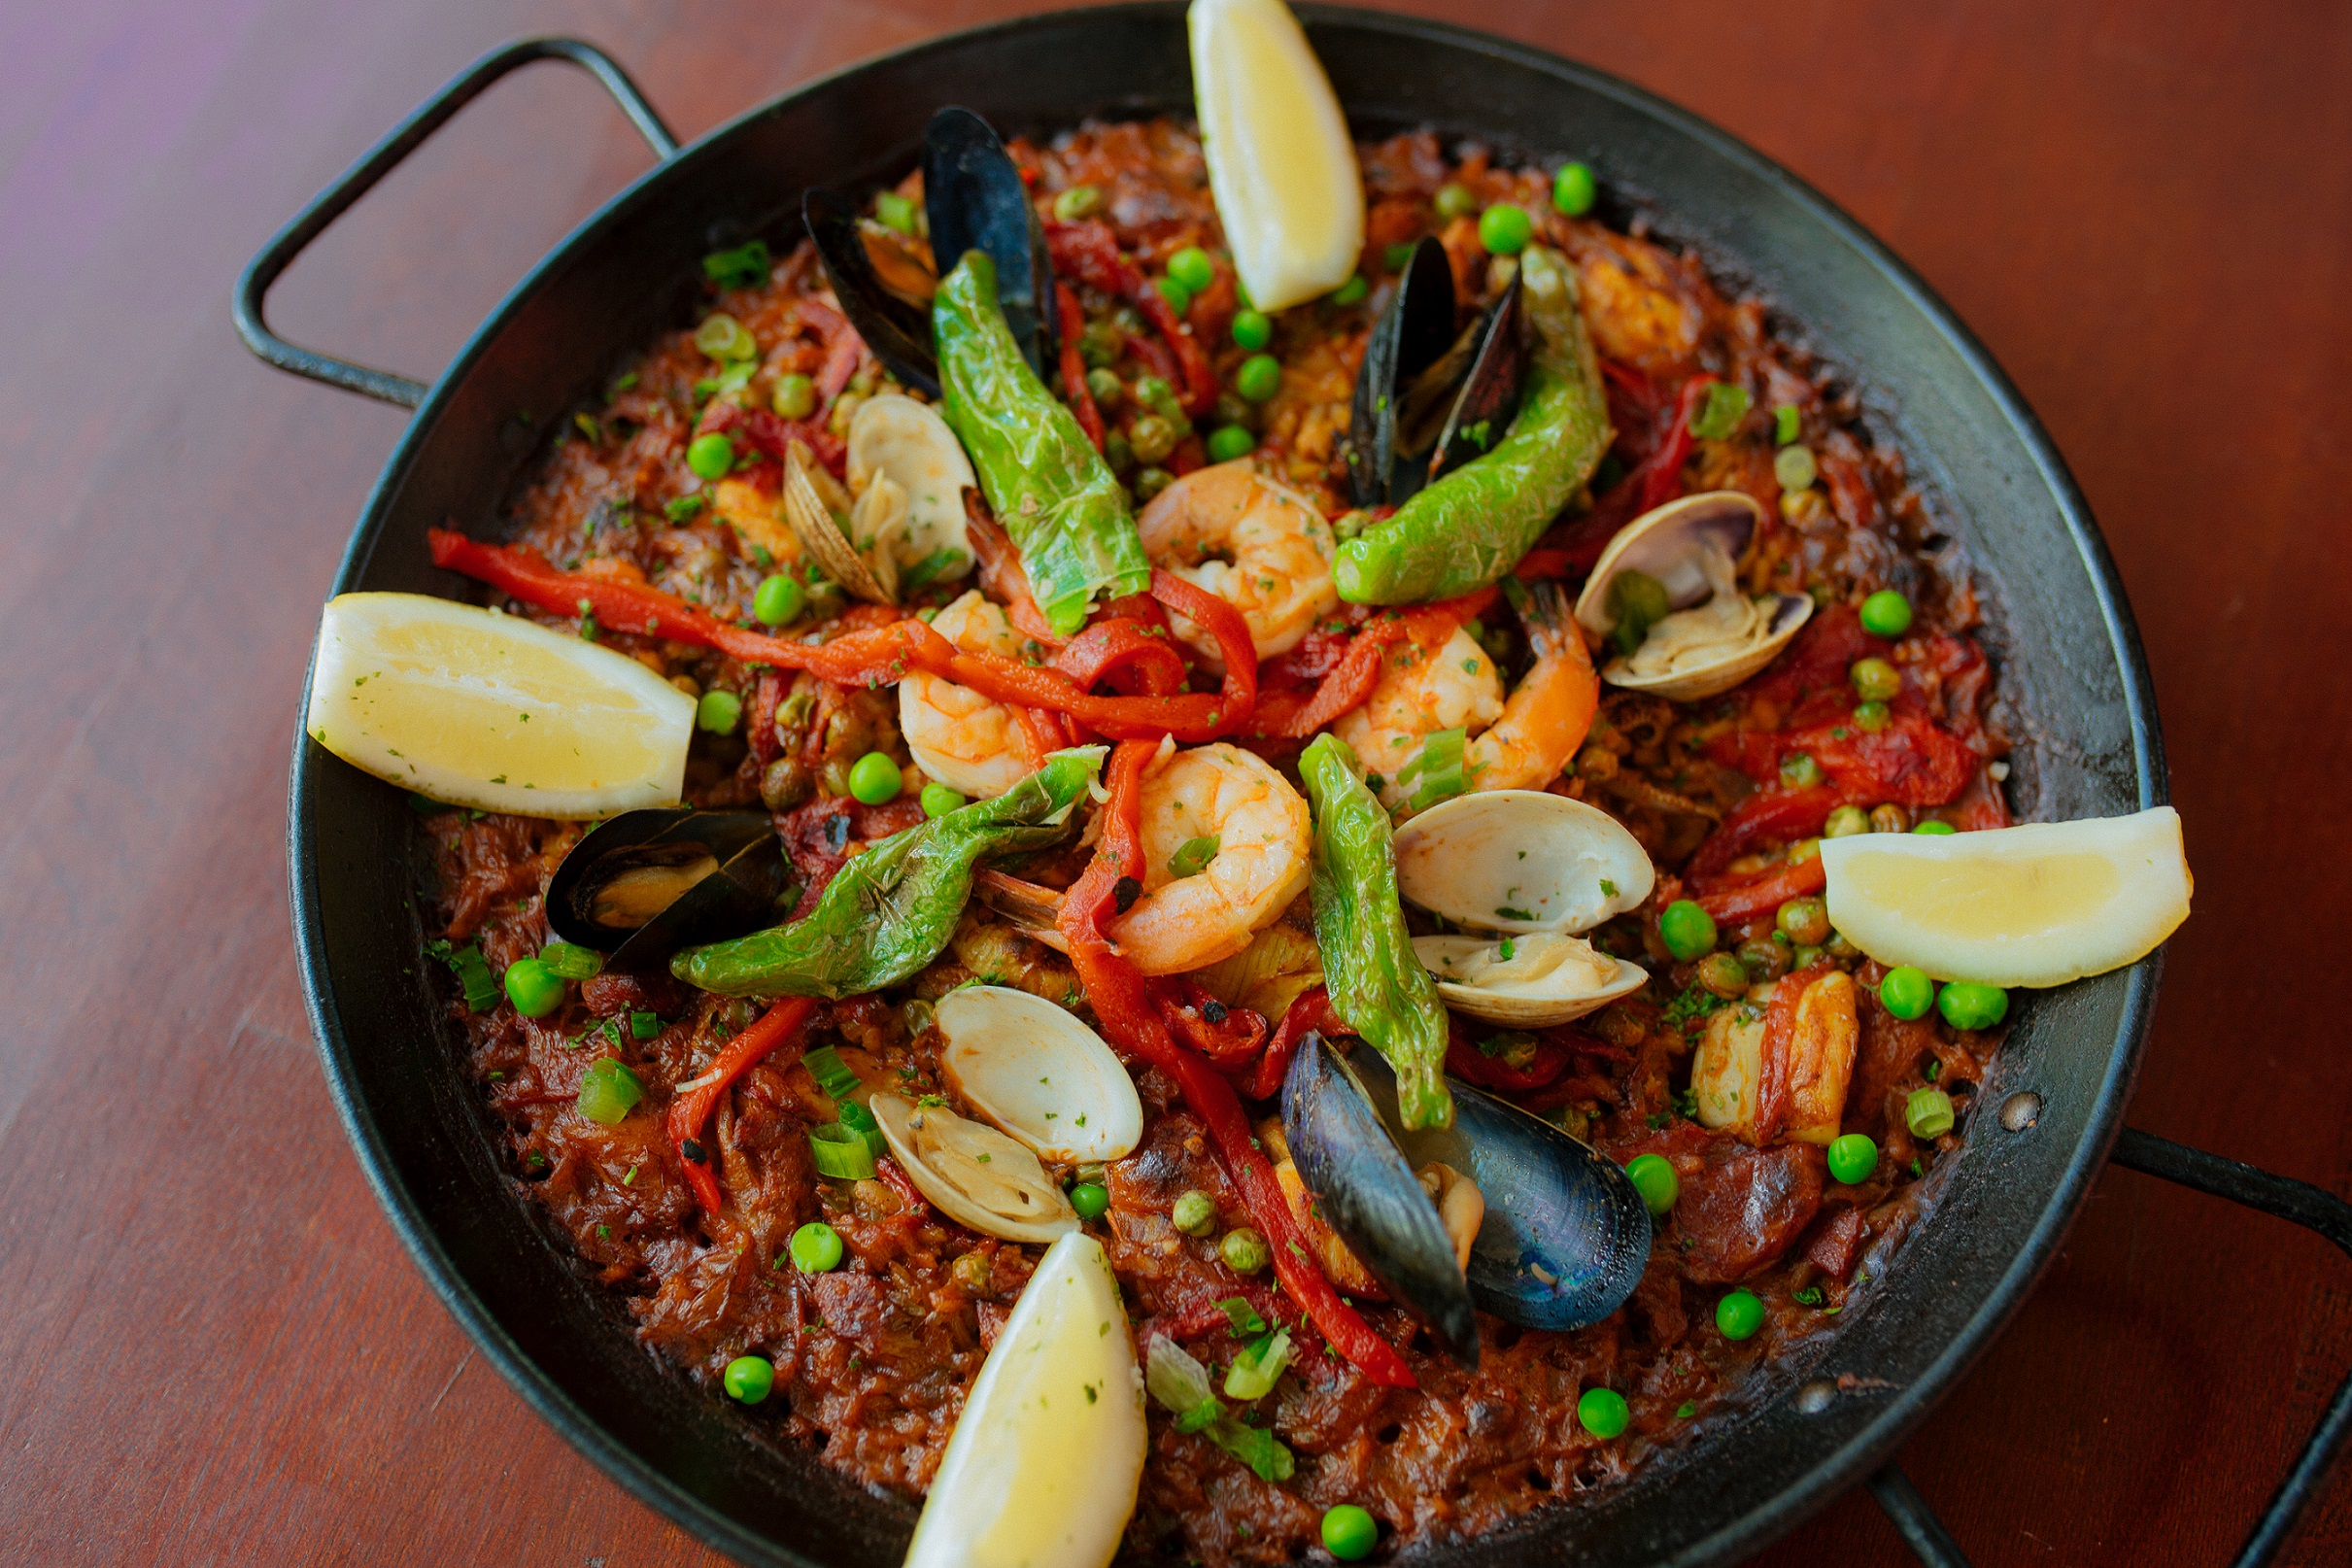 Tapas and Paella Sizzle Up the Southwest Later This Month